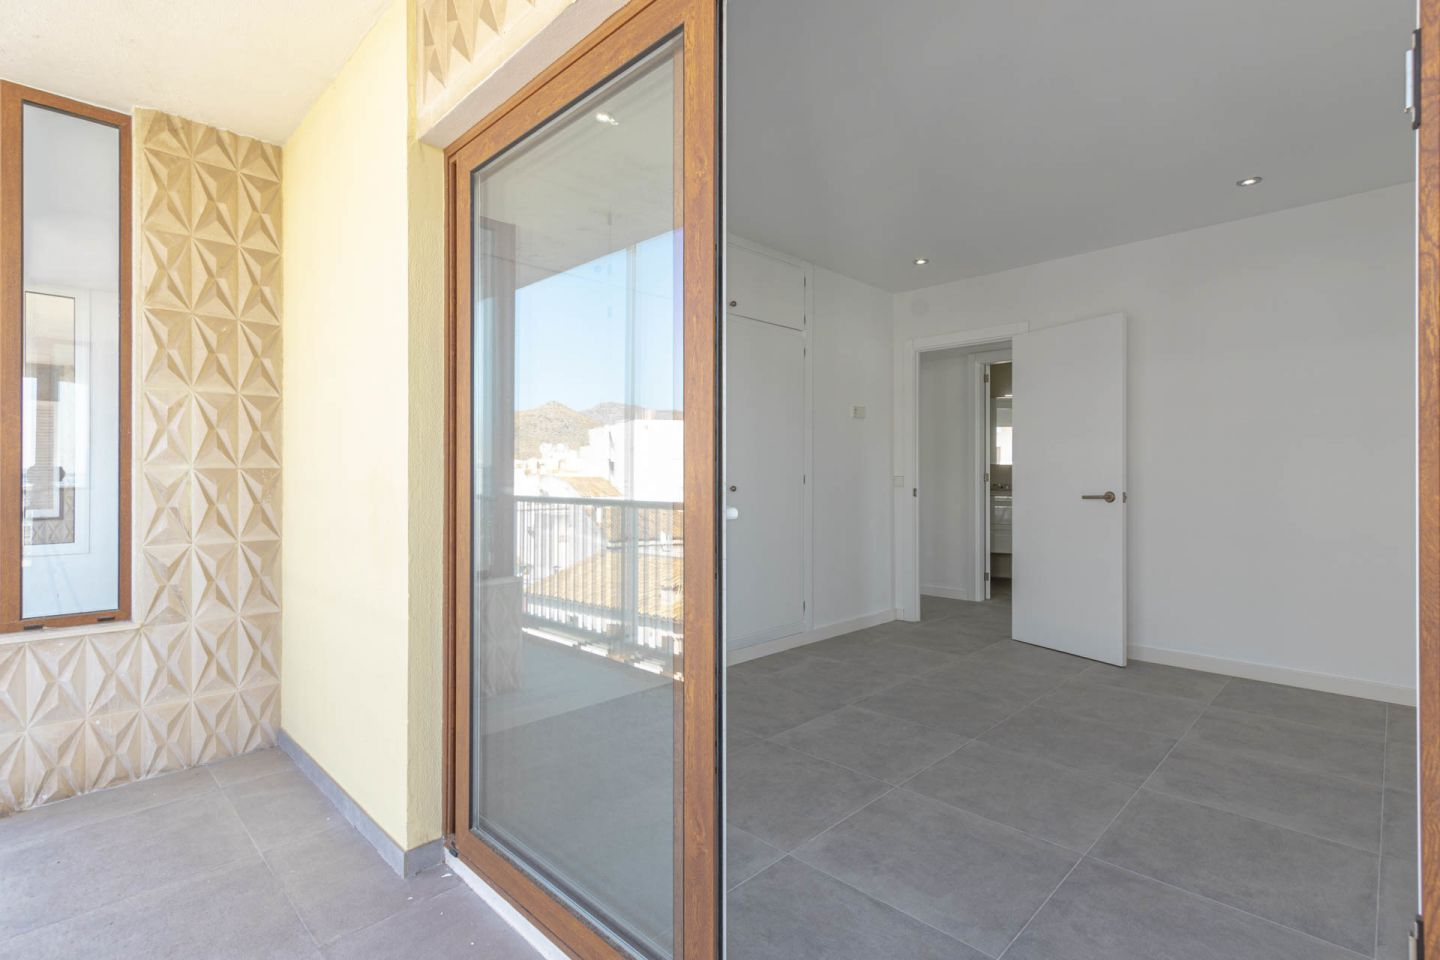 4 Bed Apartment for sale in PUERTO POLLENSA 19